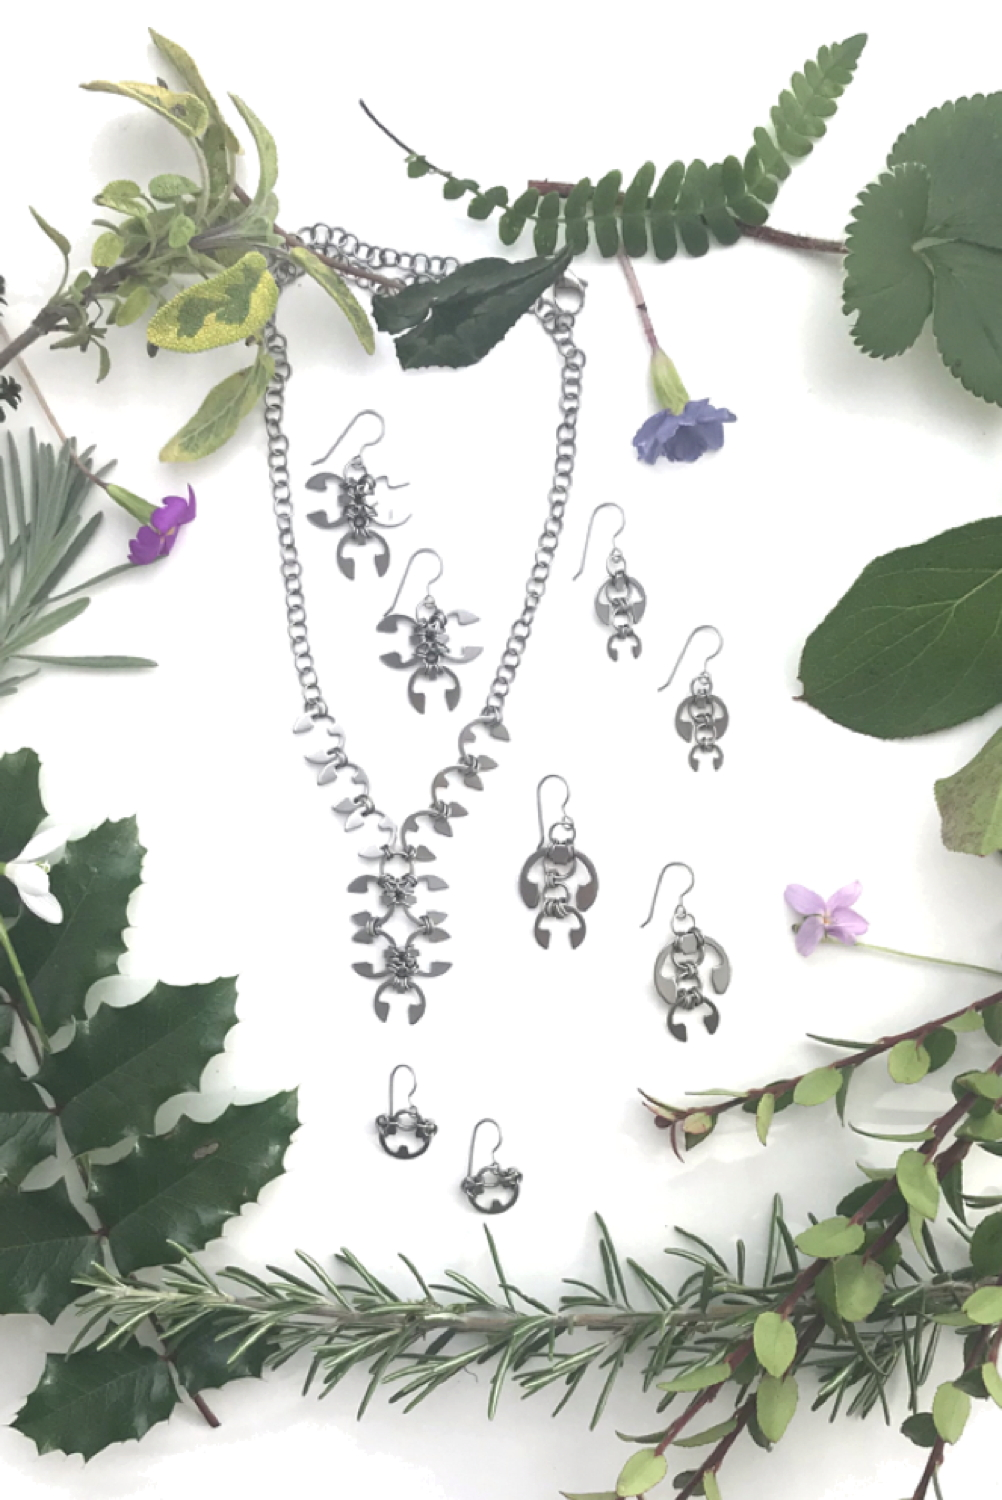 Closeup of botanical-inspired jewelry from Wraptillion's Mechanical Garden collection, surrounded by branches from mahonia, salal, rosemary, and other evergreen plants, with snowdrop, primrose, and violet spring flowers.